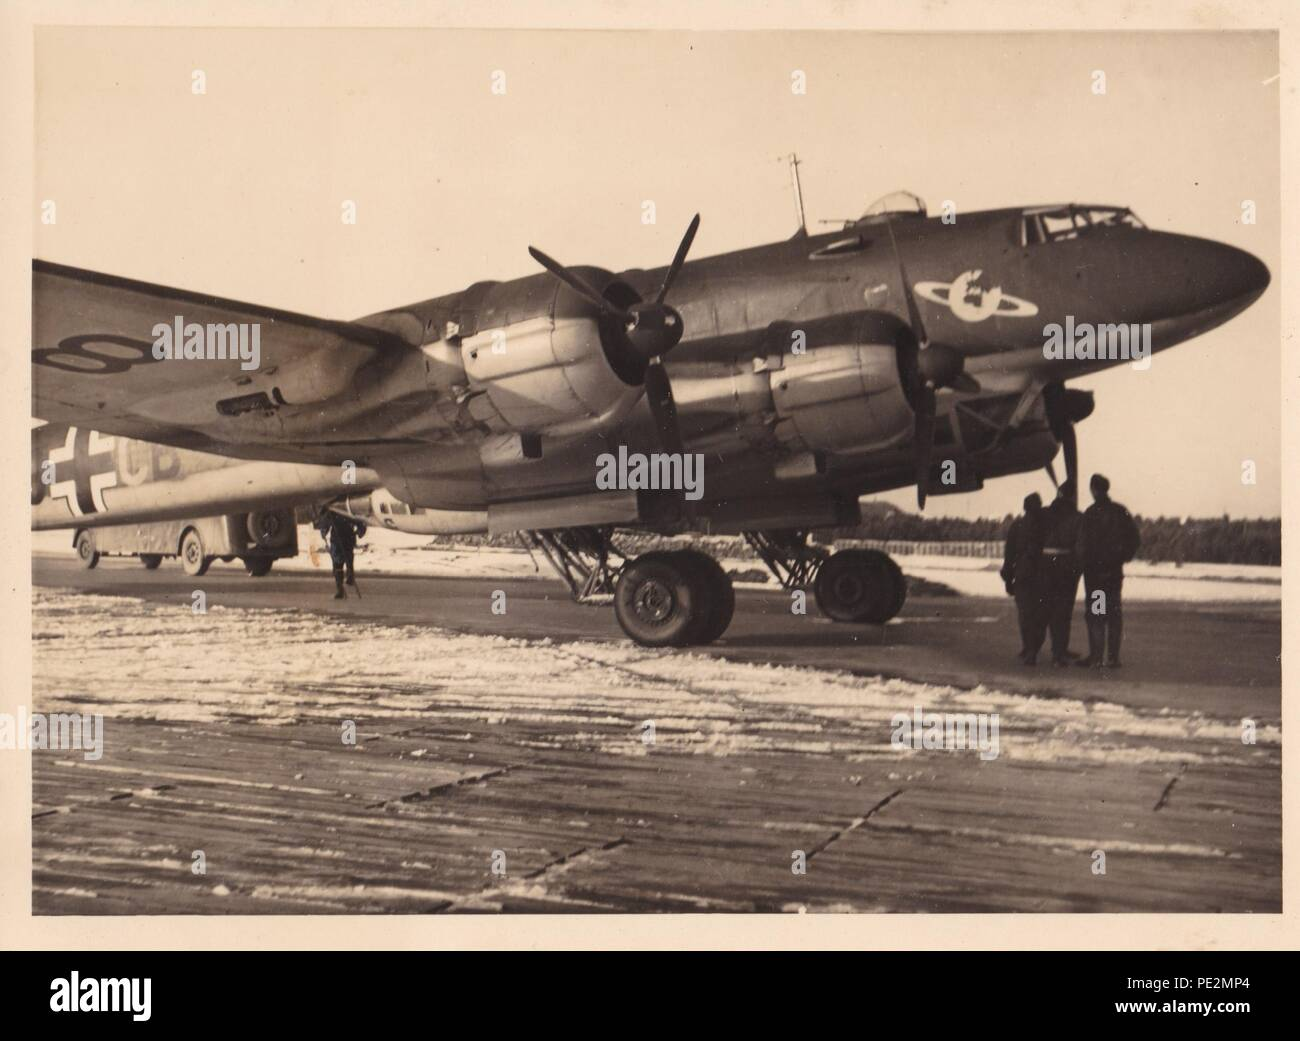 Image from the photo album of Oberfeldwebel Karl Gendner of 1. Staffel, Kampfgeschwader 40: Focke Wulf FW 200 Condor F8+CB of the Staff Flight, I.Gruppe KG 40 prior to take-off on a mission from Stavanger to Bordeaux on 1st April 1941. - Stock Image